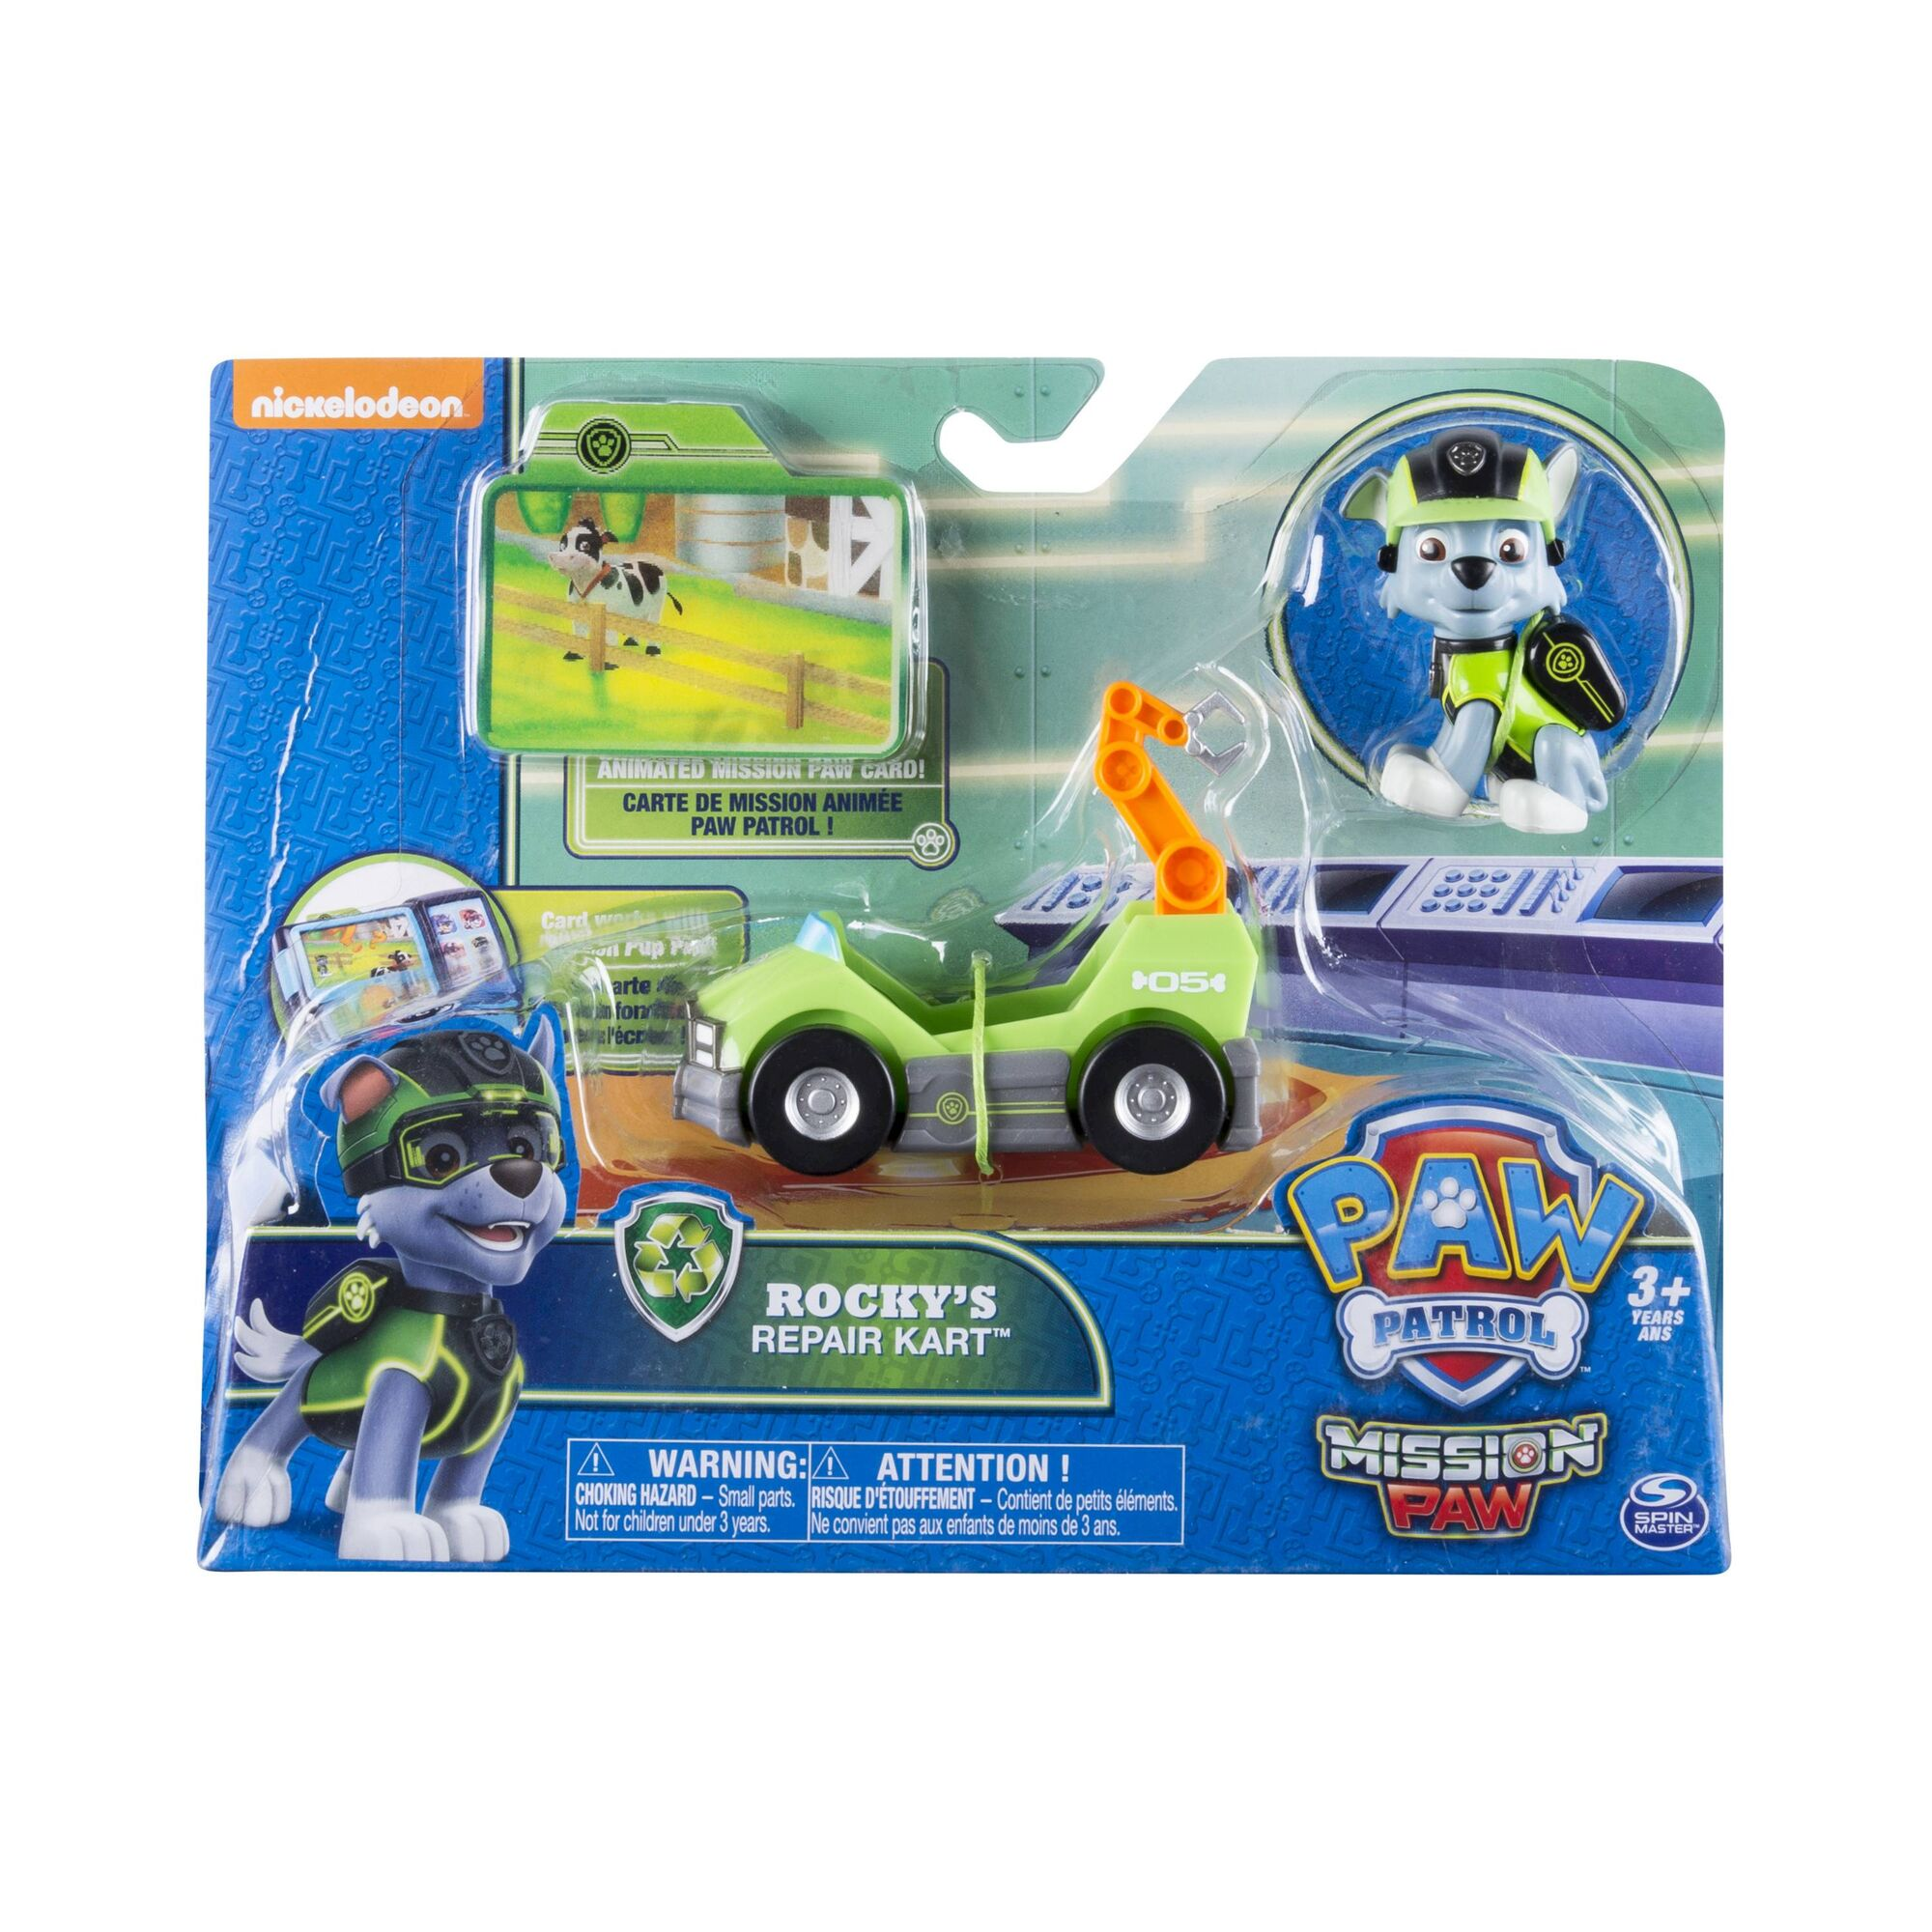 image paw patrol mission paw rocky 39 s repair paw patrol wiki fandom powered by wikia. Black Bedroom Furniture Sets. Home Design Ideas